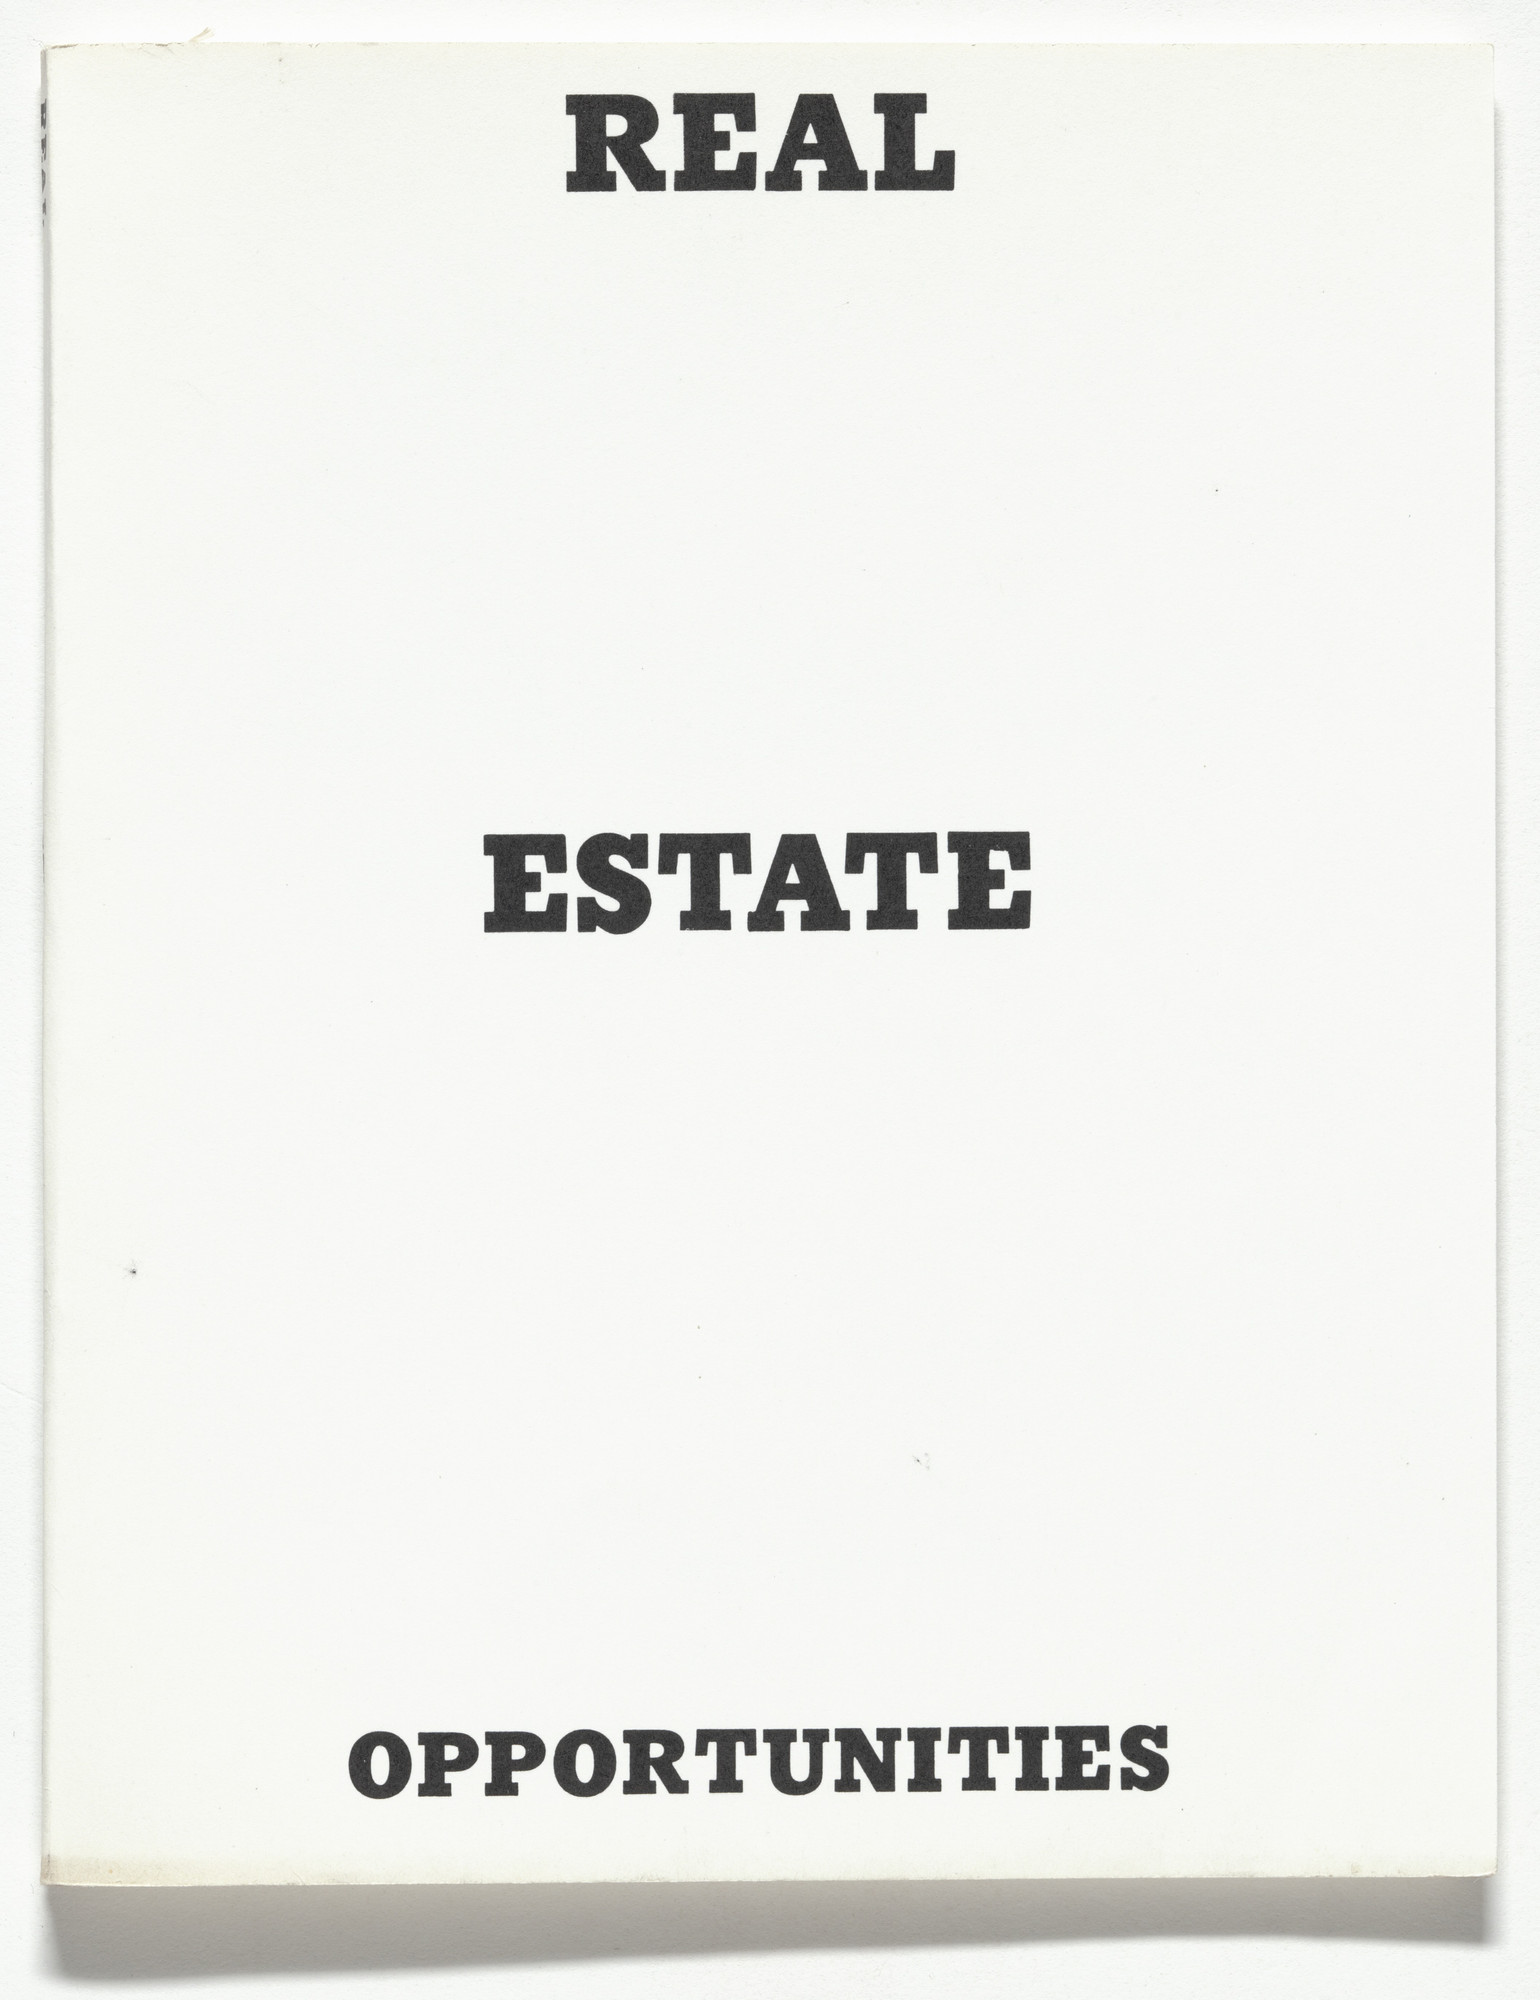 Edward Ruscha. Real Estate Opportunities. 1970